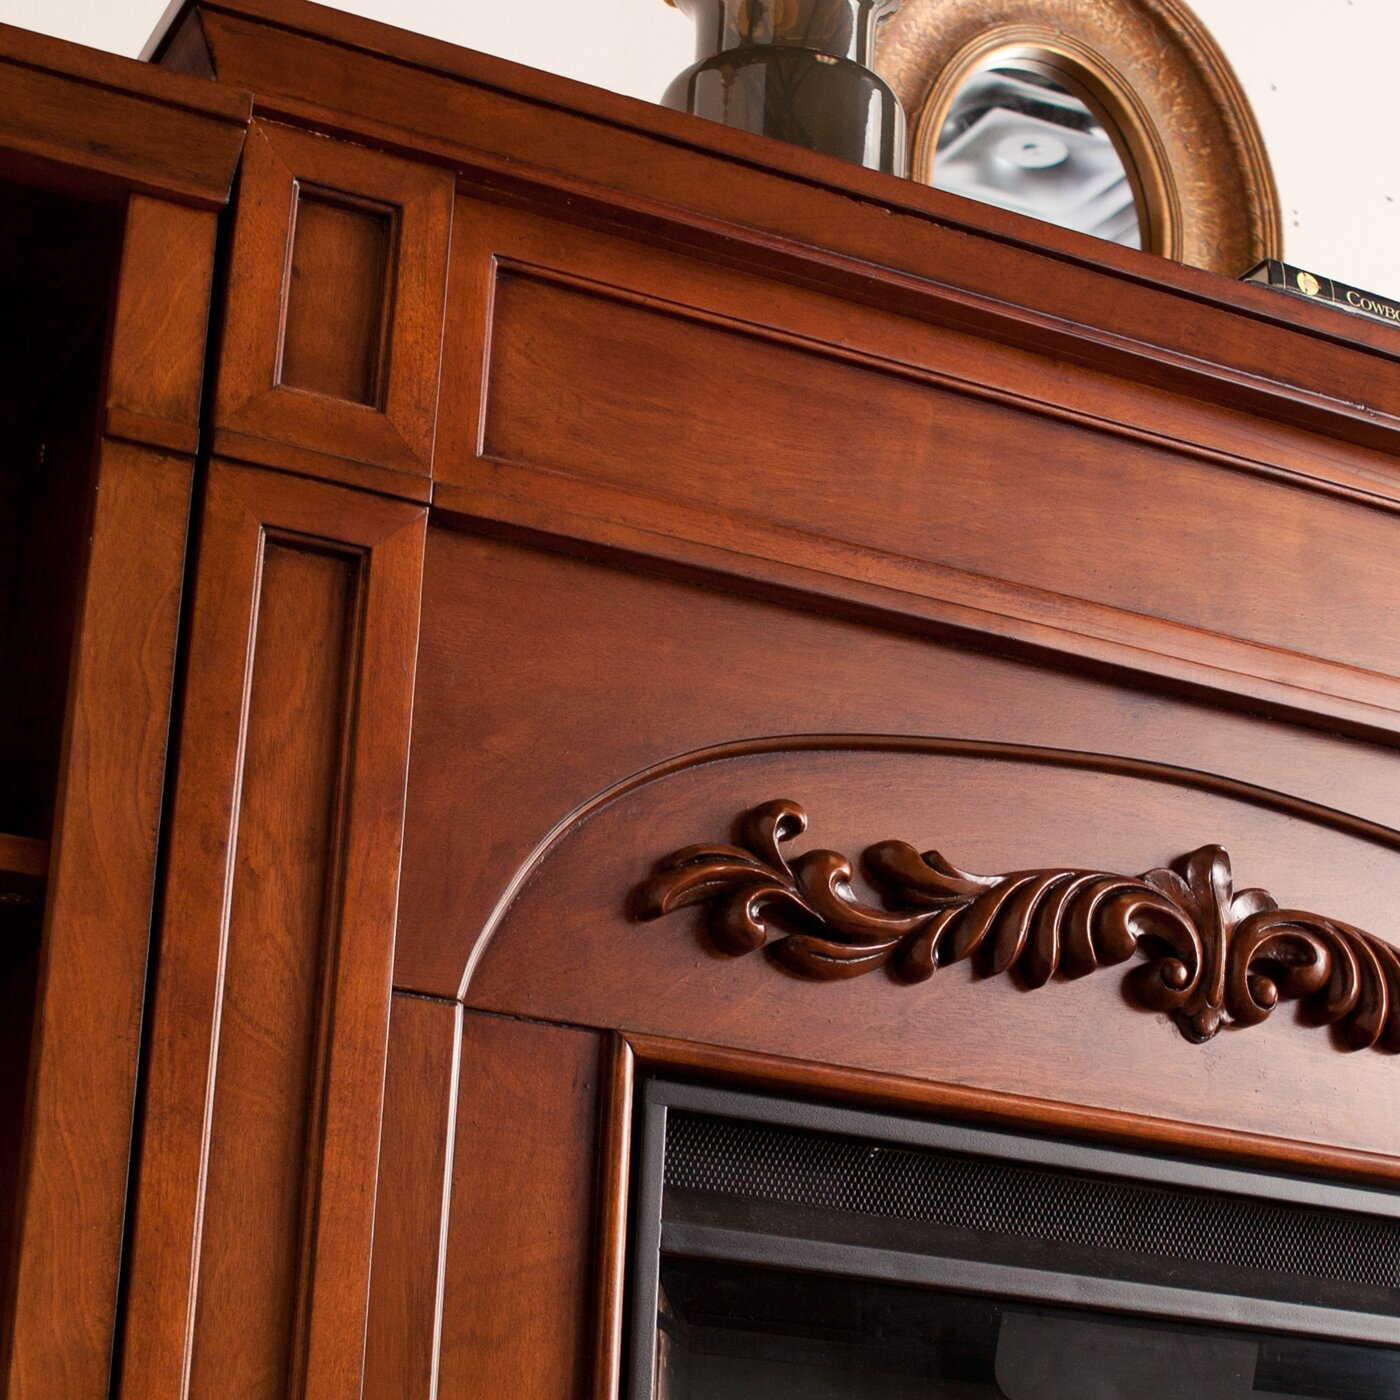 Montgomery 26in electric fireplace and tv stand cherry 26mm2490 c233 - Astoria Grand Grandmasters 42 Bookcase Electric Fireplace